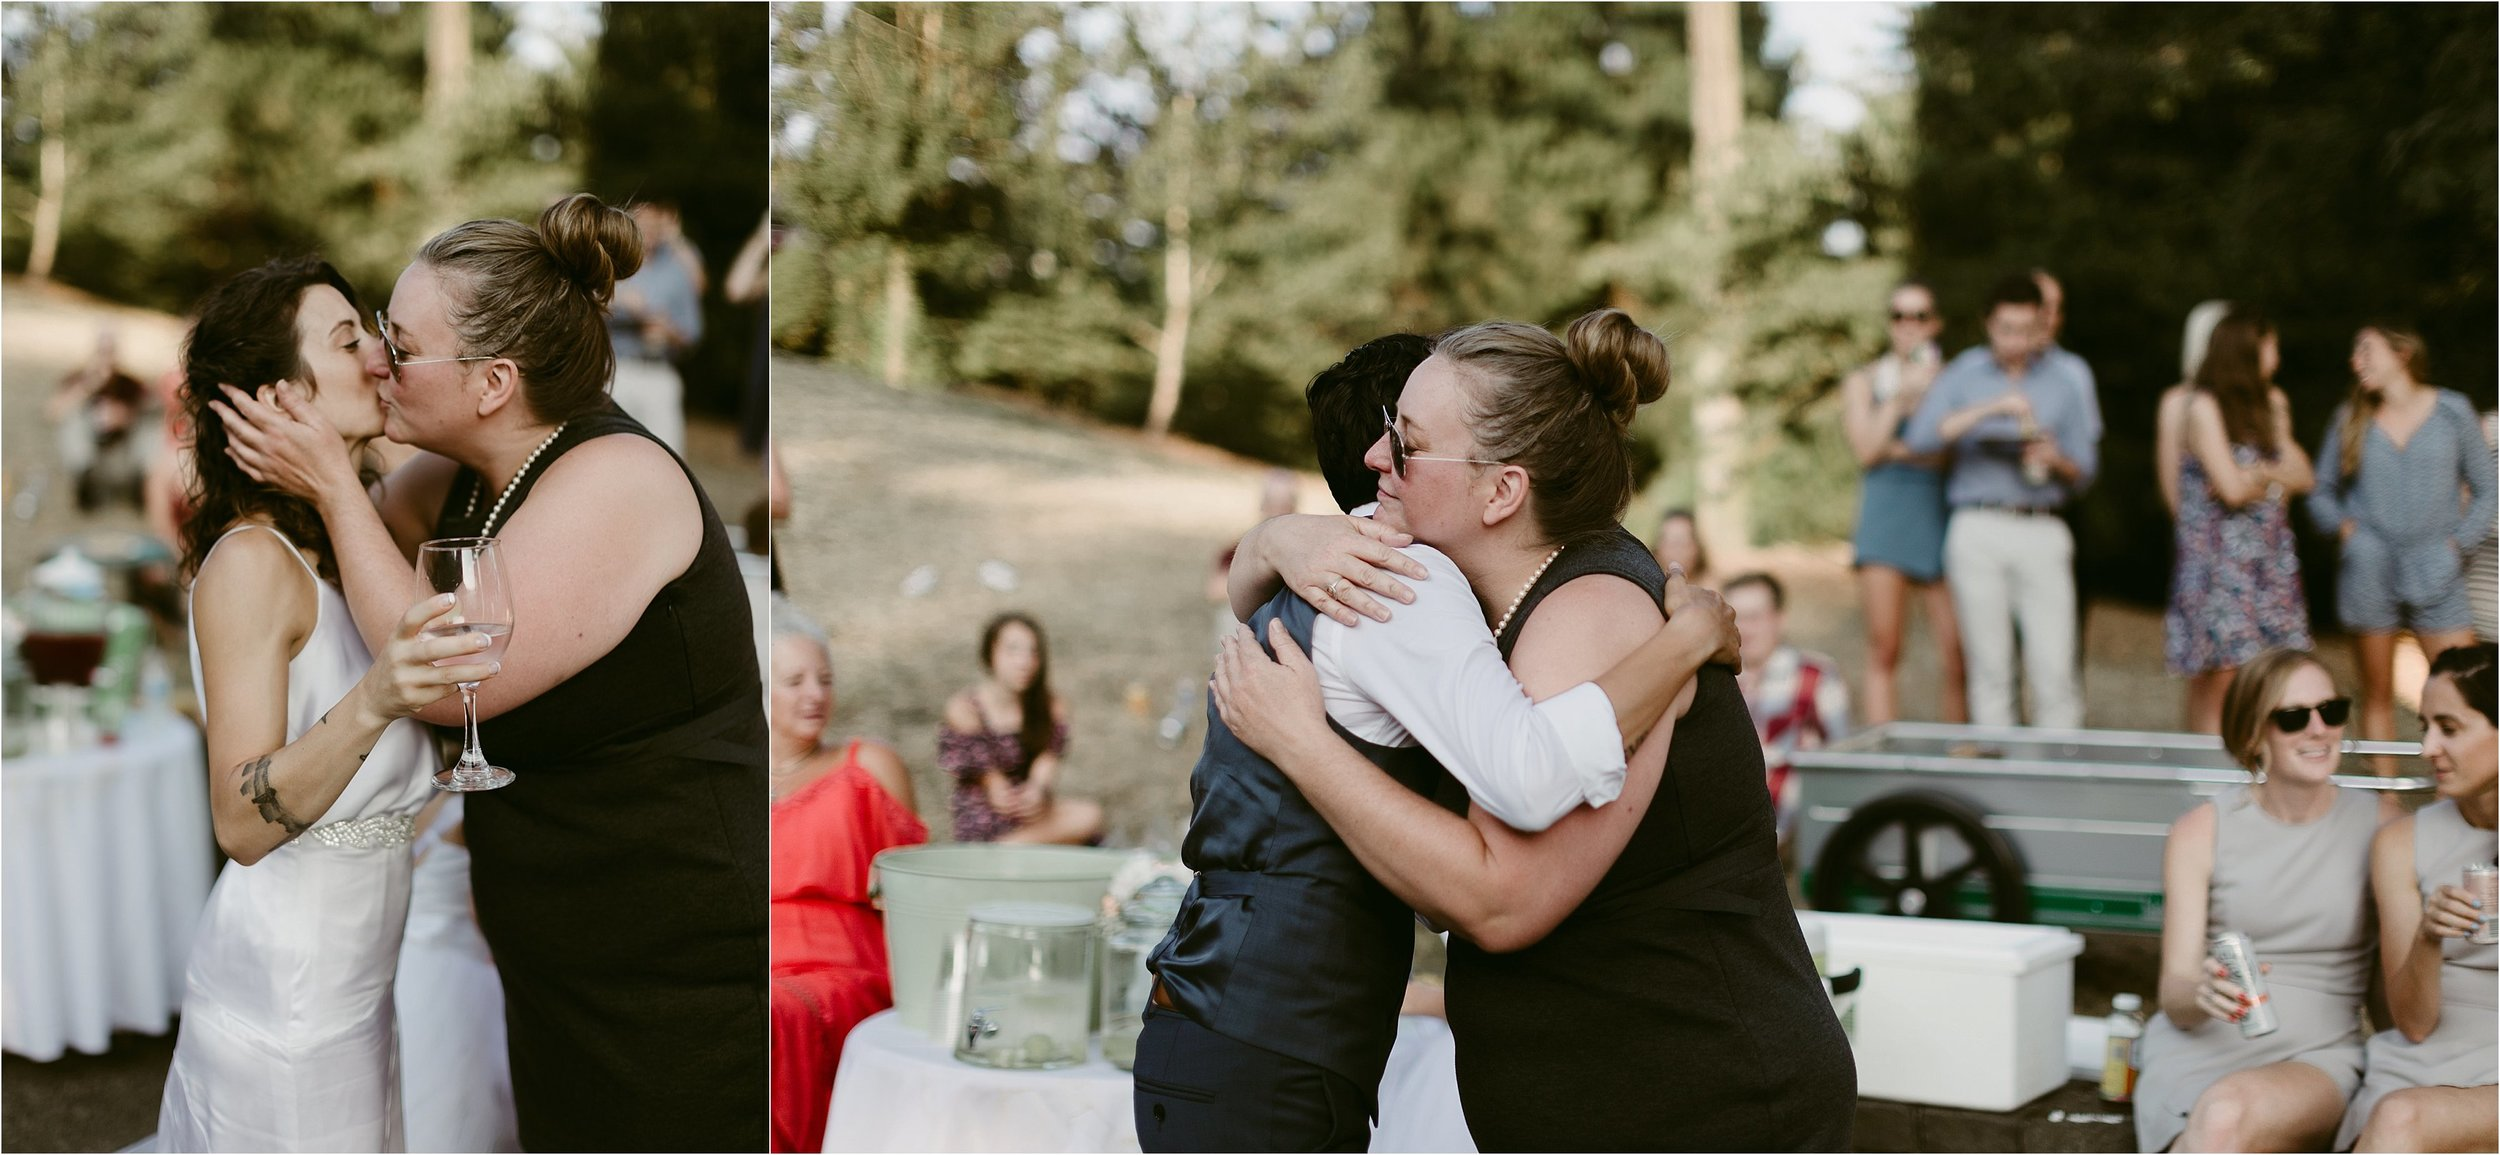 same-sex-wedding-catherdral-park-portland-indie-photographer_0230.jpg